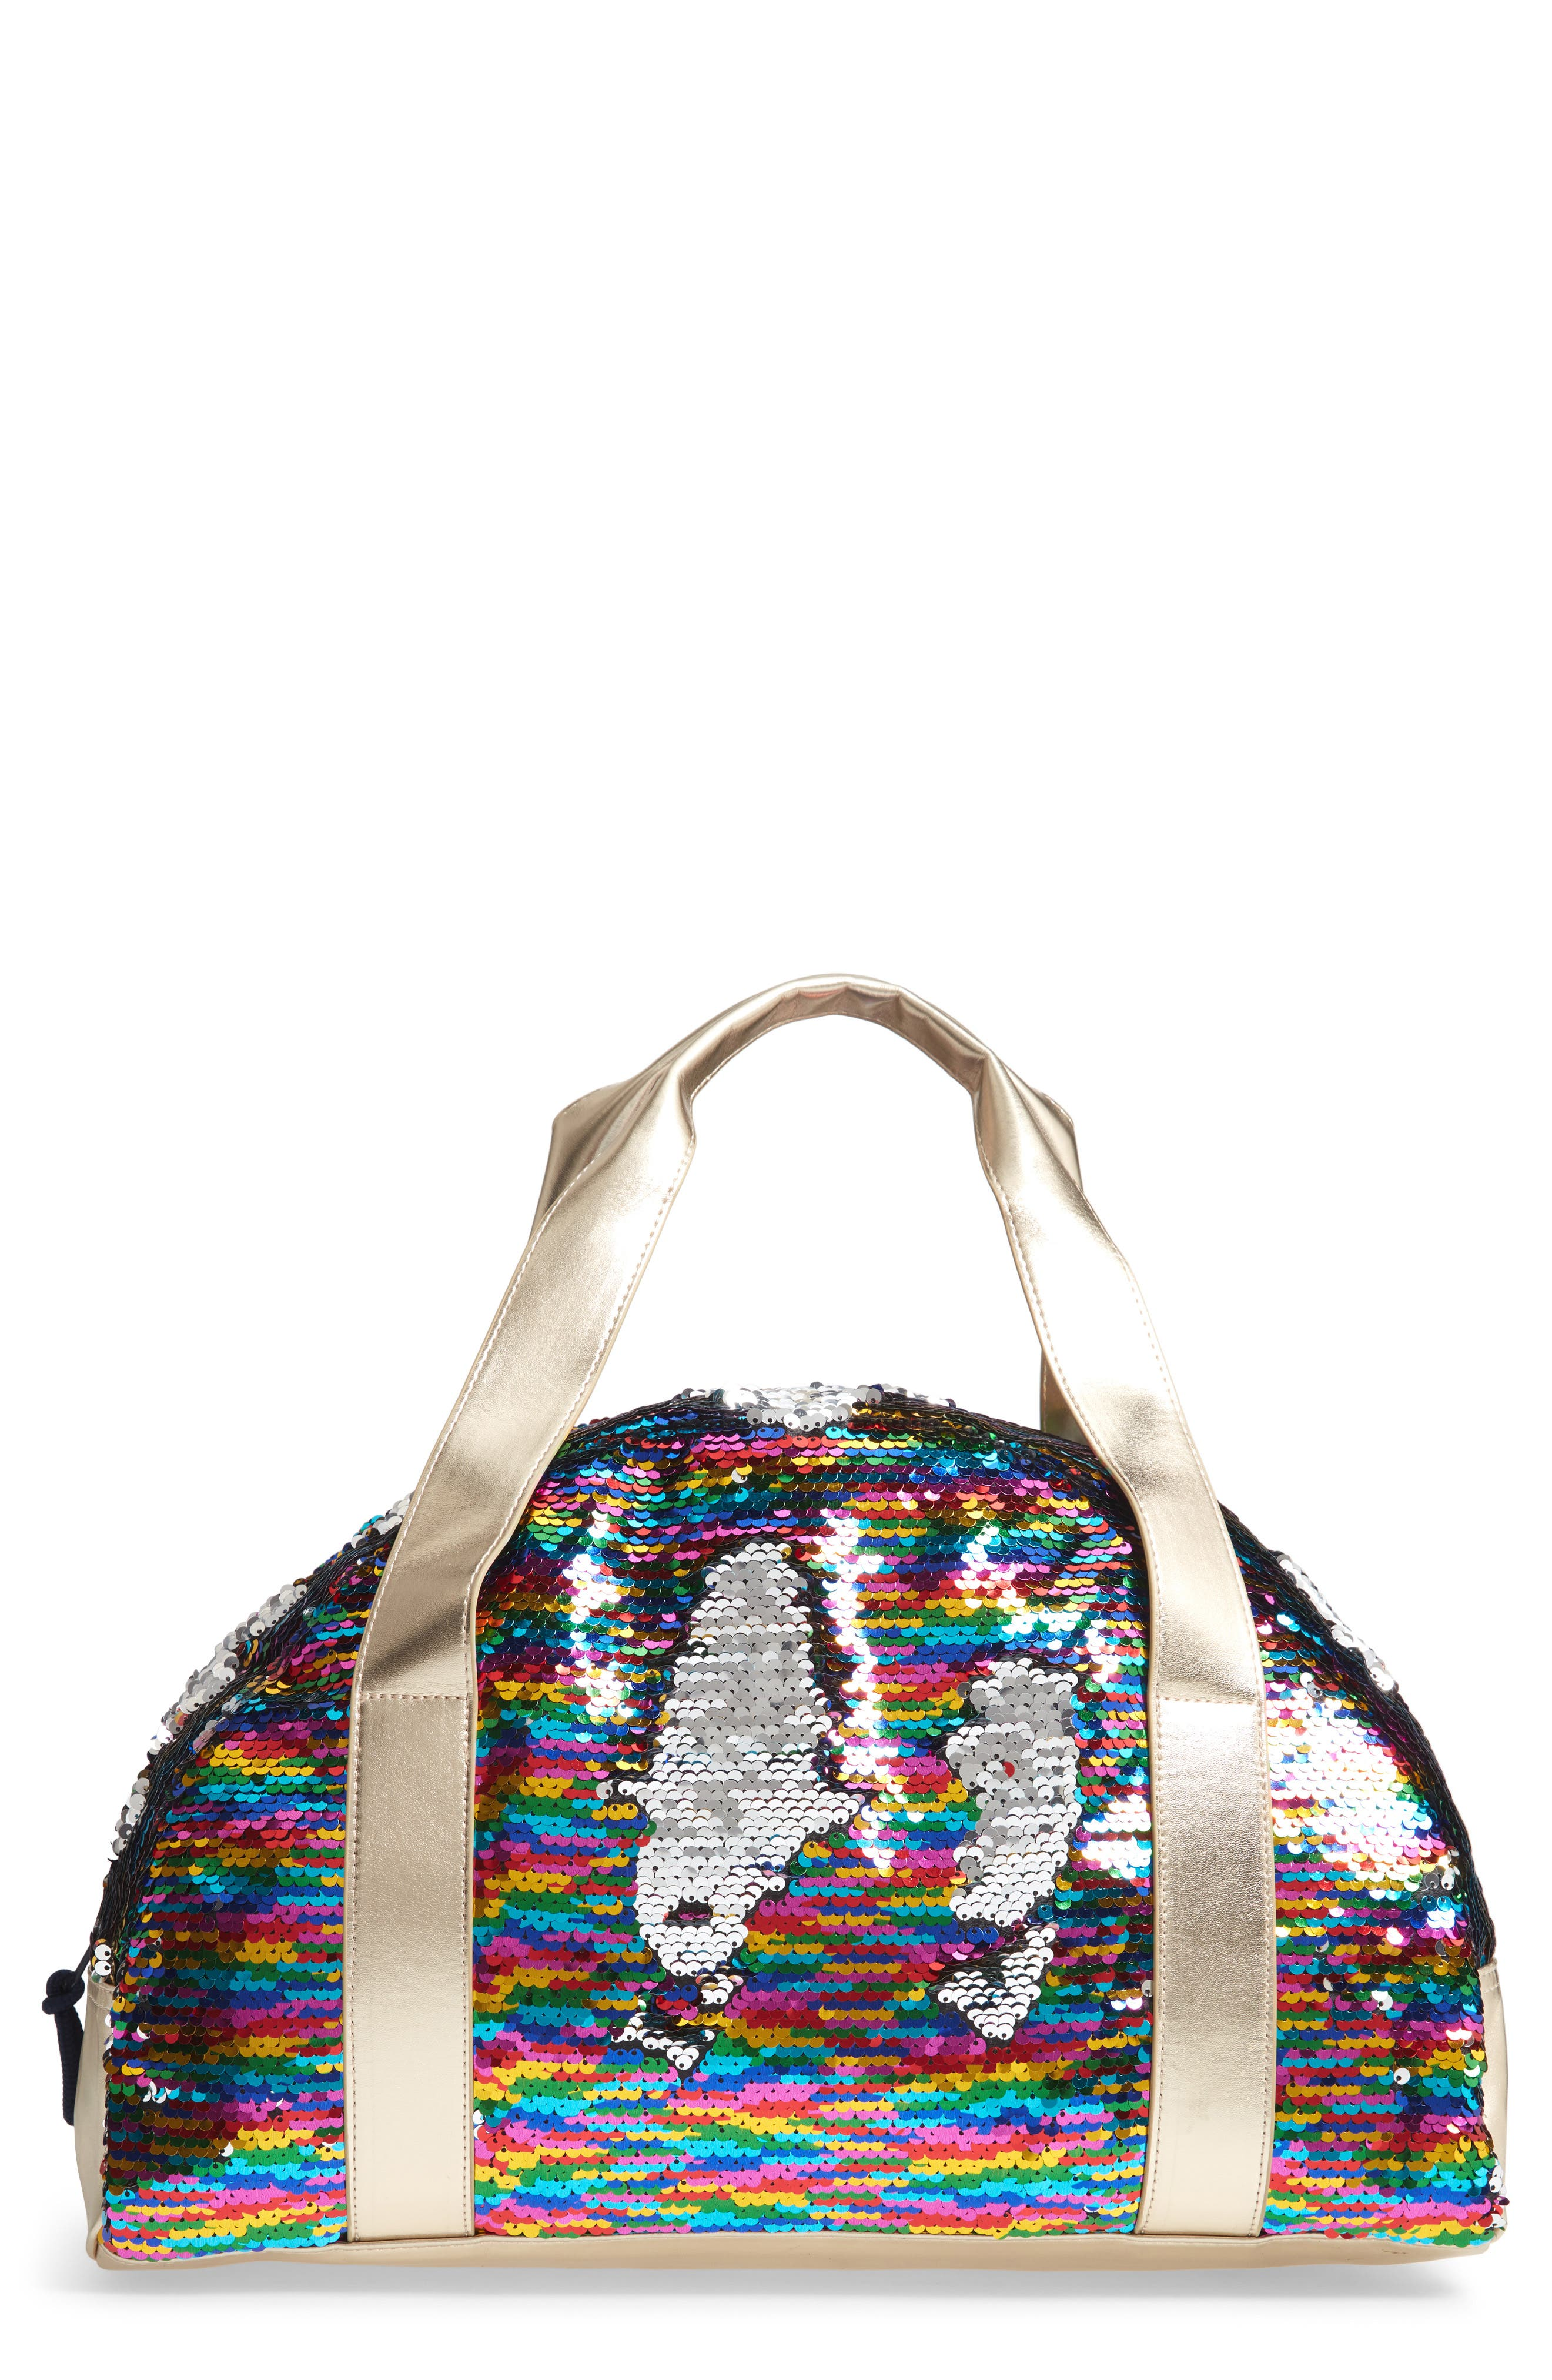 Overnight Bag with Reversible Sequins,                         Main,                         color, 964